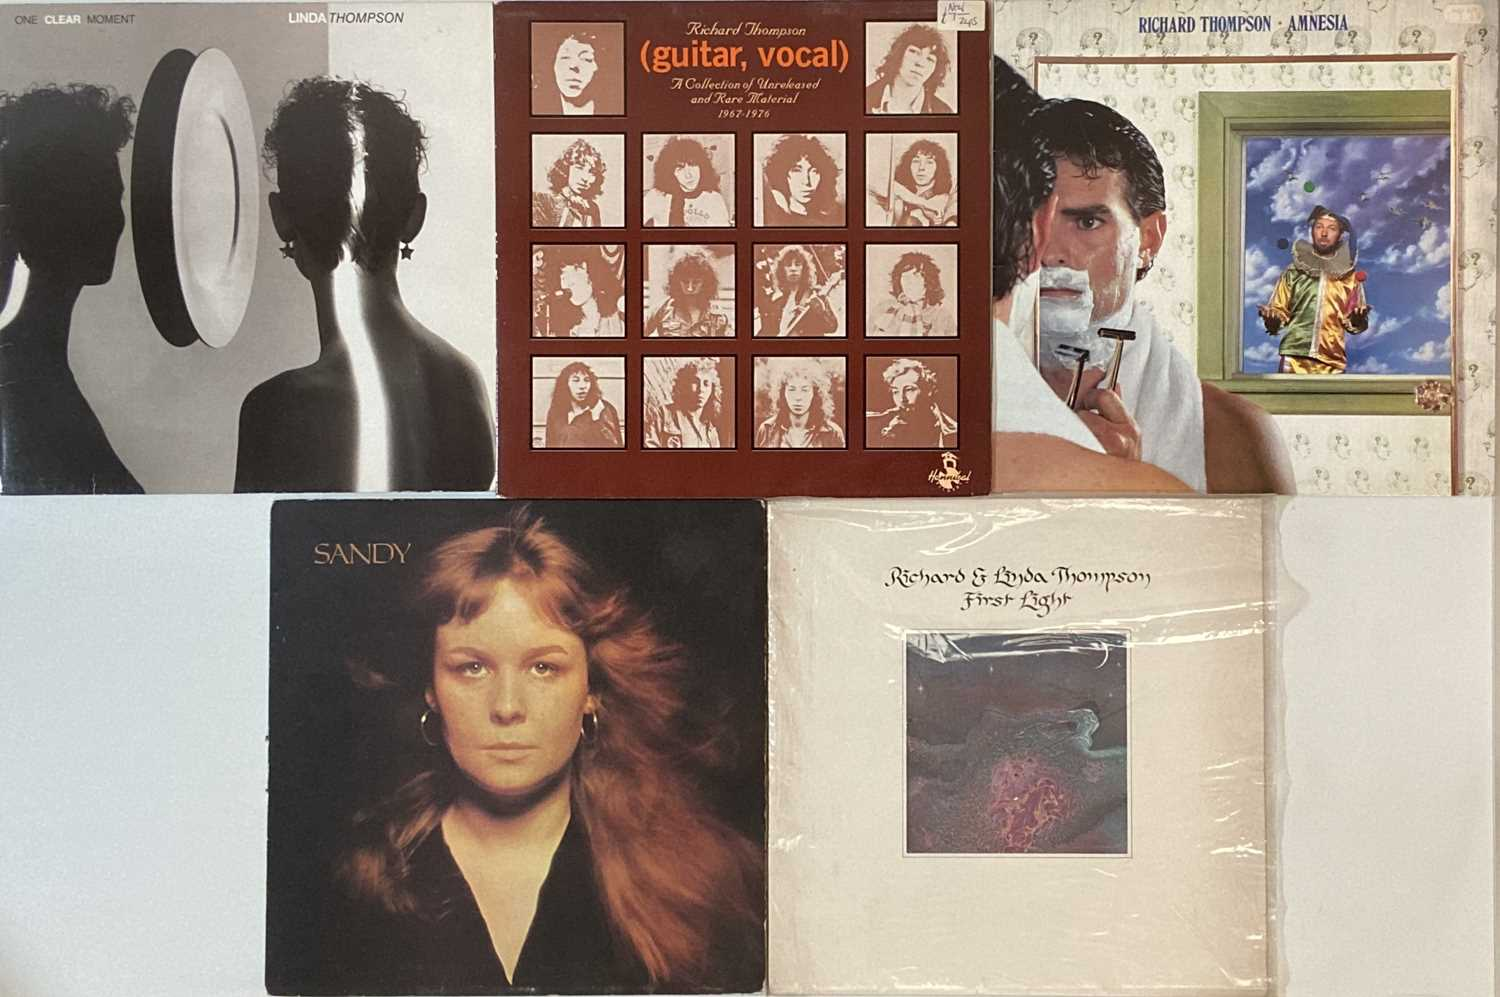 FAIRPORT CONVENTION AND RELATED - LPs - Image 2 of 4